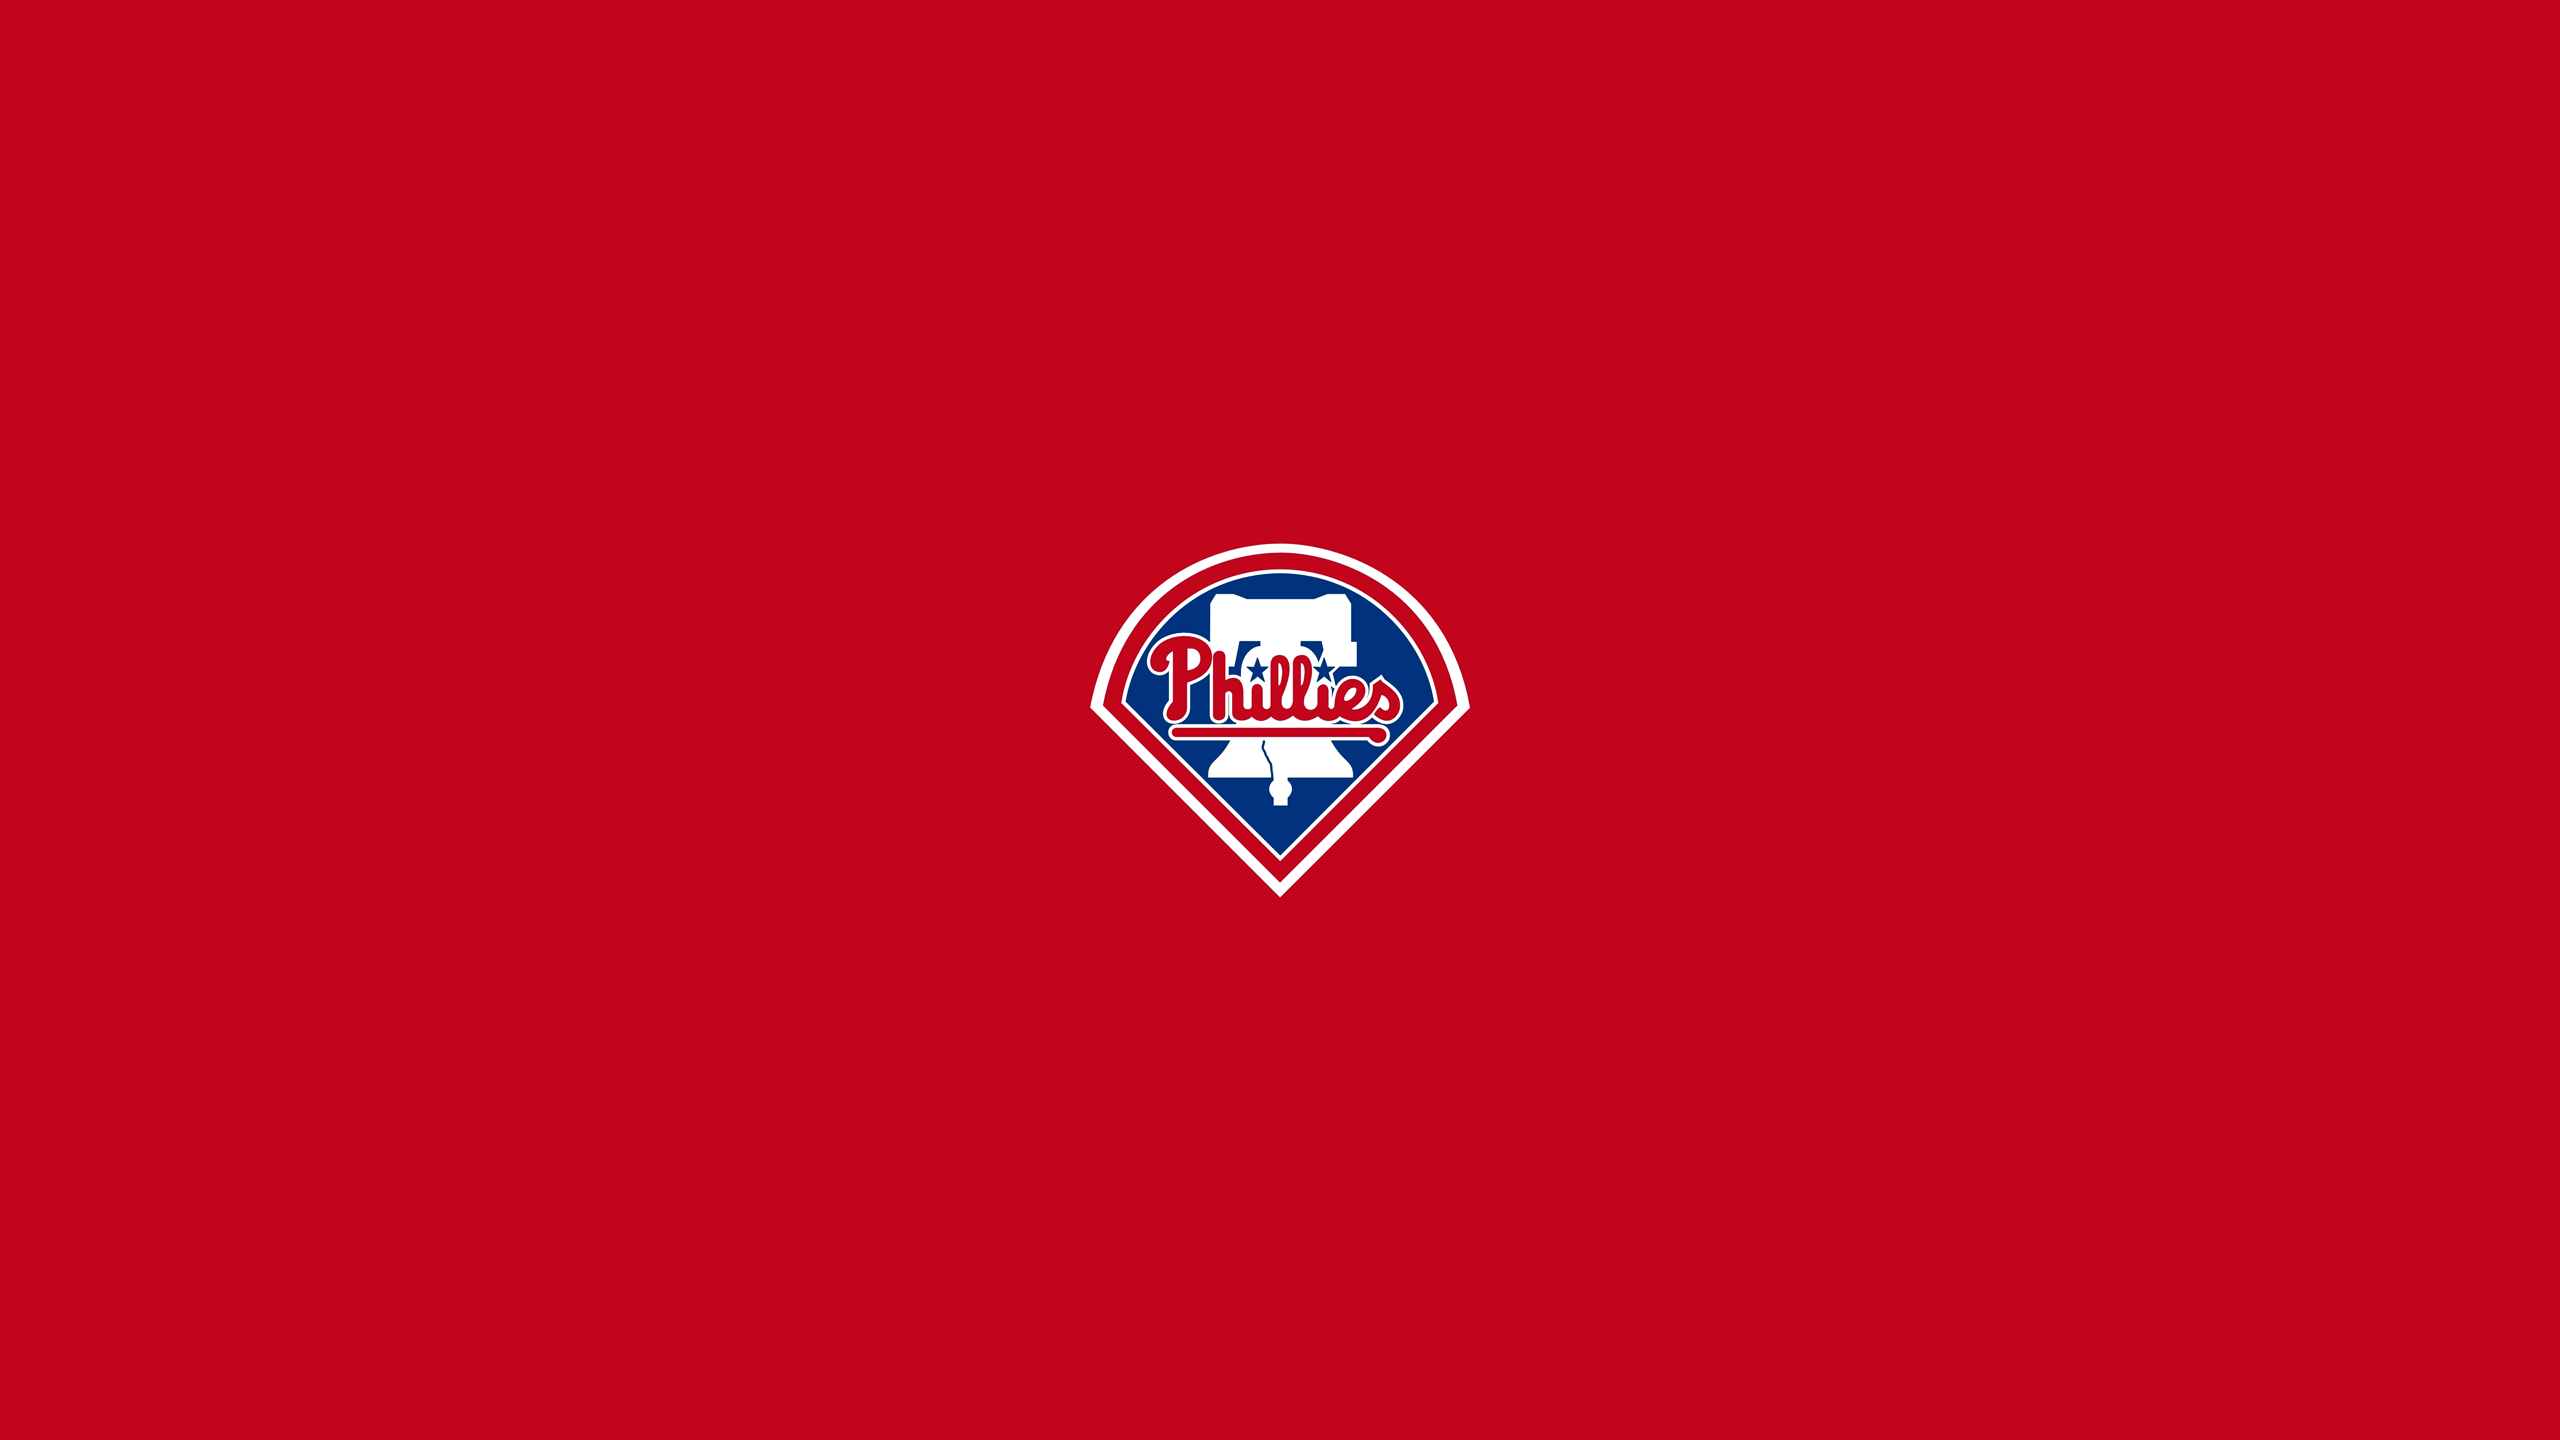 Phillies Wallpapers 2015 - Wallpaper Cave